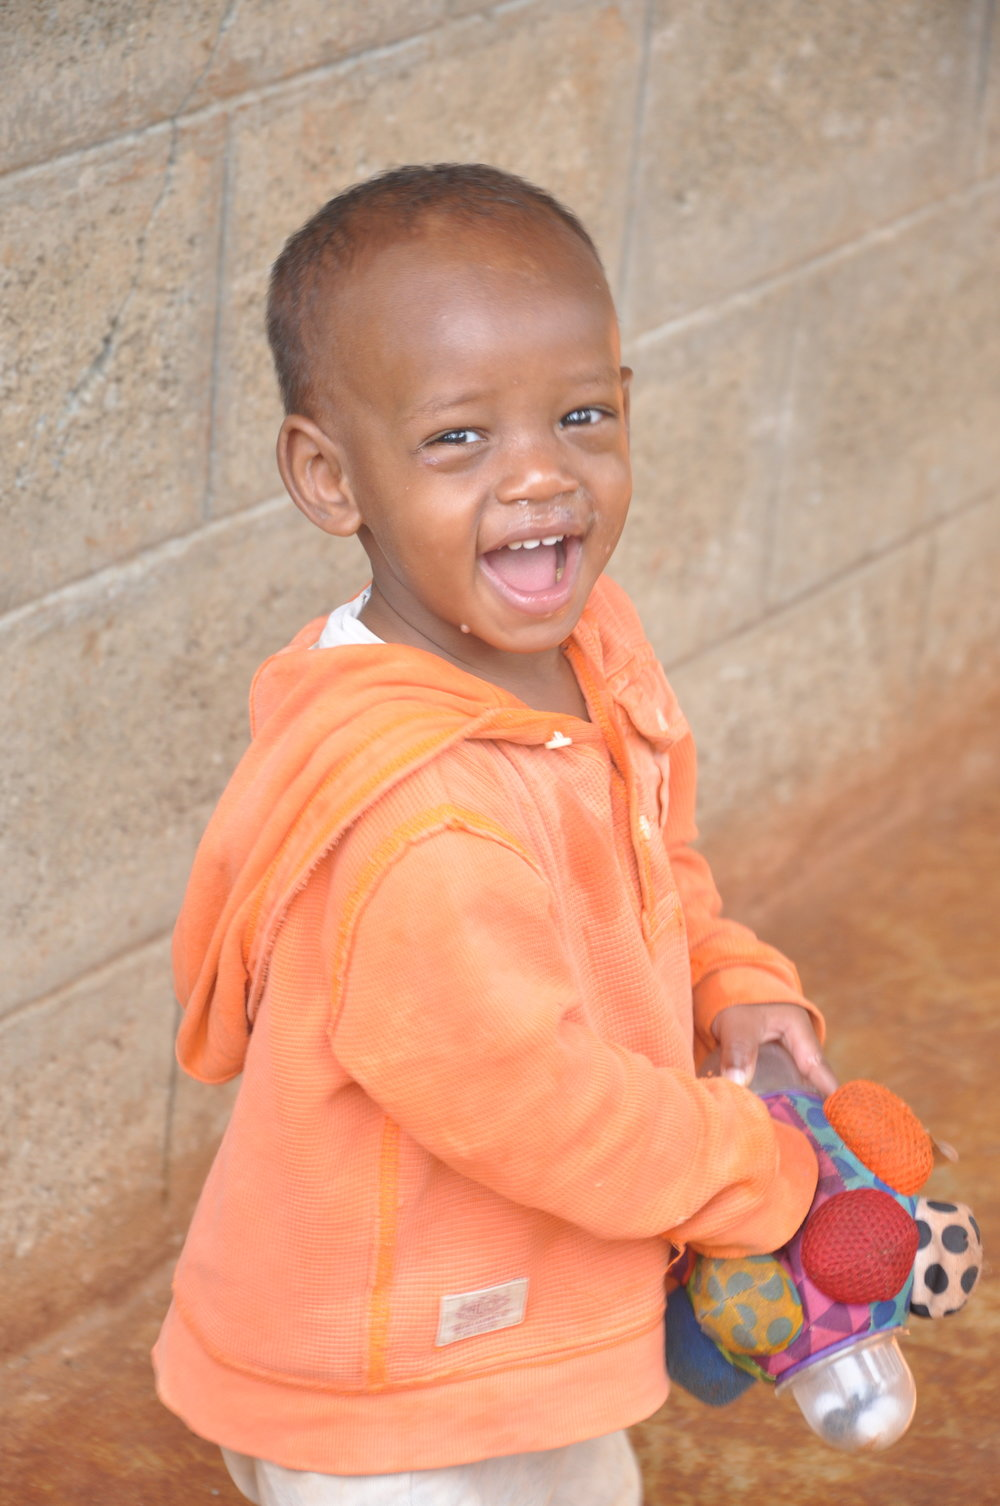 Desta  Desta is one of those baby boys who just can't seem to stop smiling, or making everyone around him grin like crazy too! He is mold.Desta is generously sponsored by Renata Collado, Enrique Gonzales, and Monica DeCima.